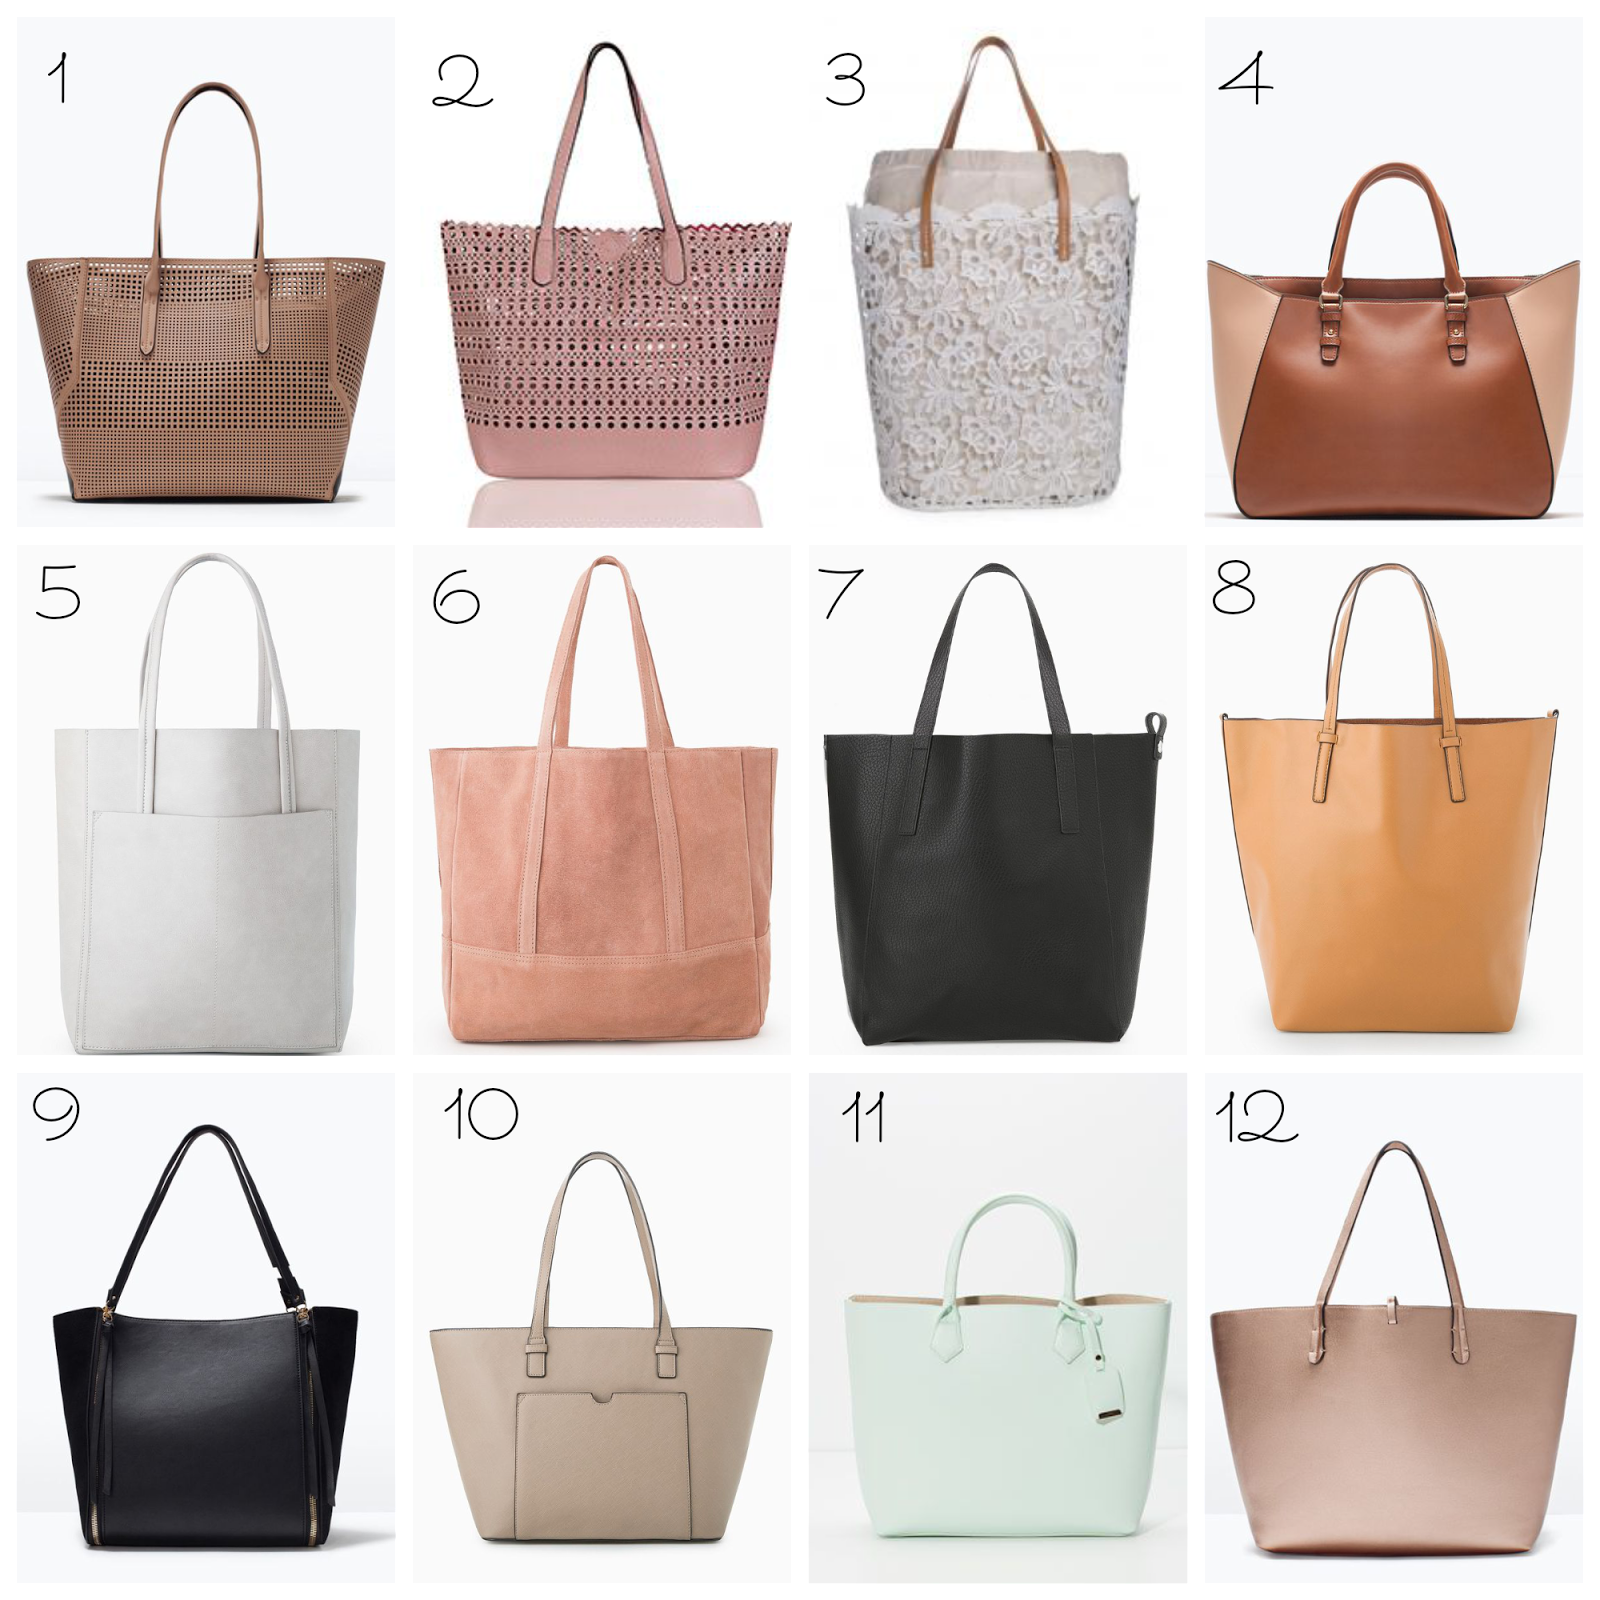 Ioanna's Notebook - SS 2015 Shopper Bags under 40 euros